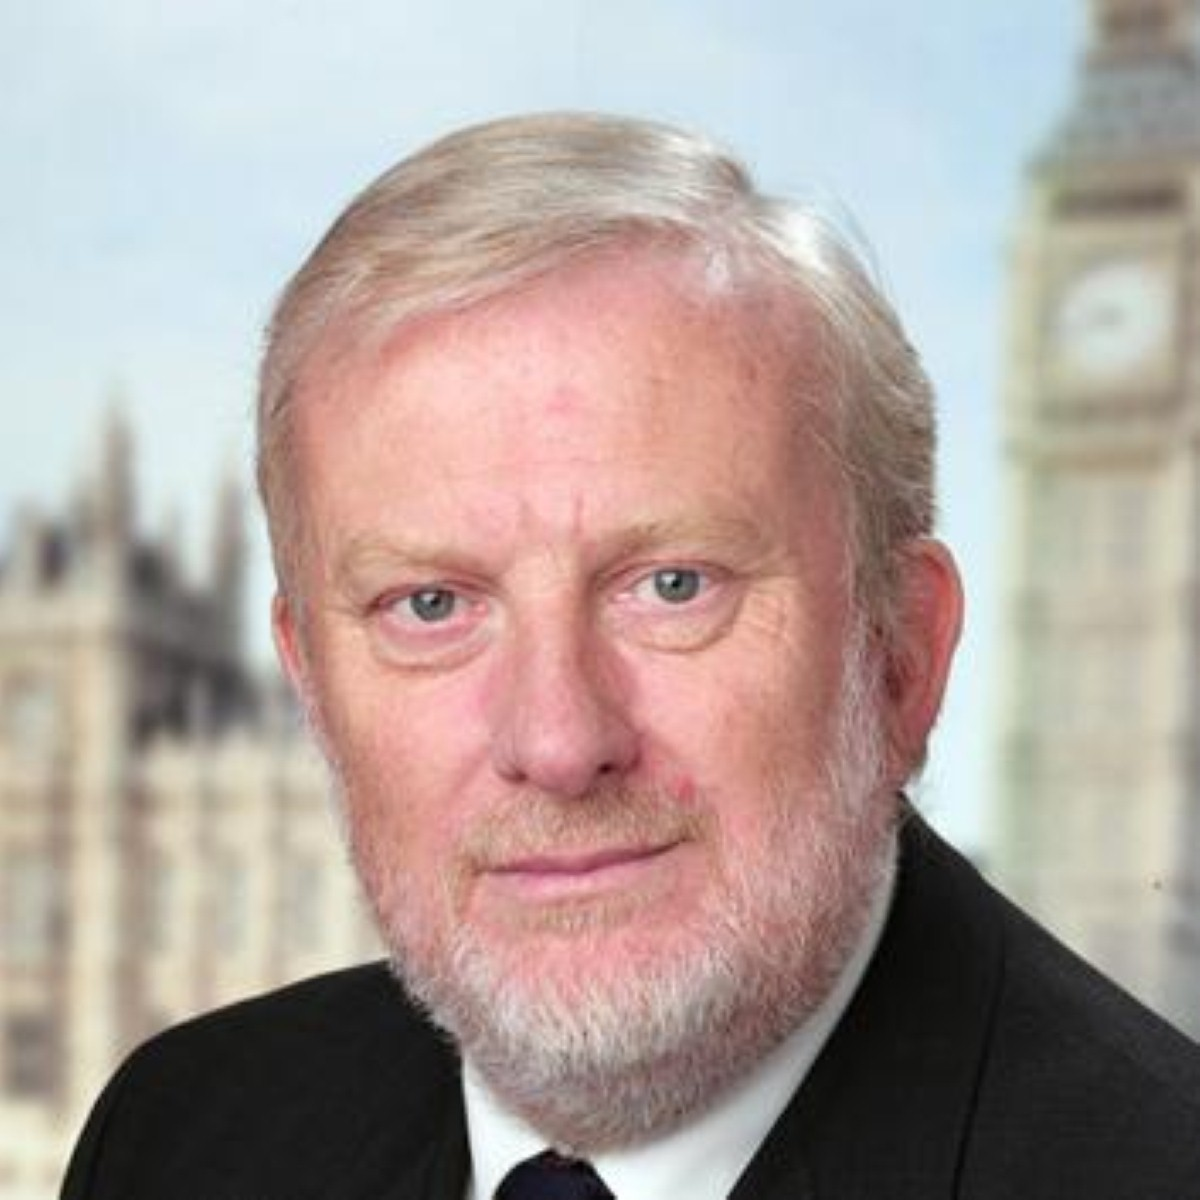 Andrew Miller is chair of parliament's science and technology committee